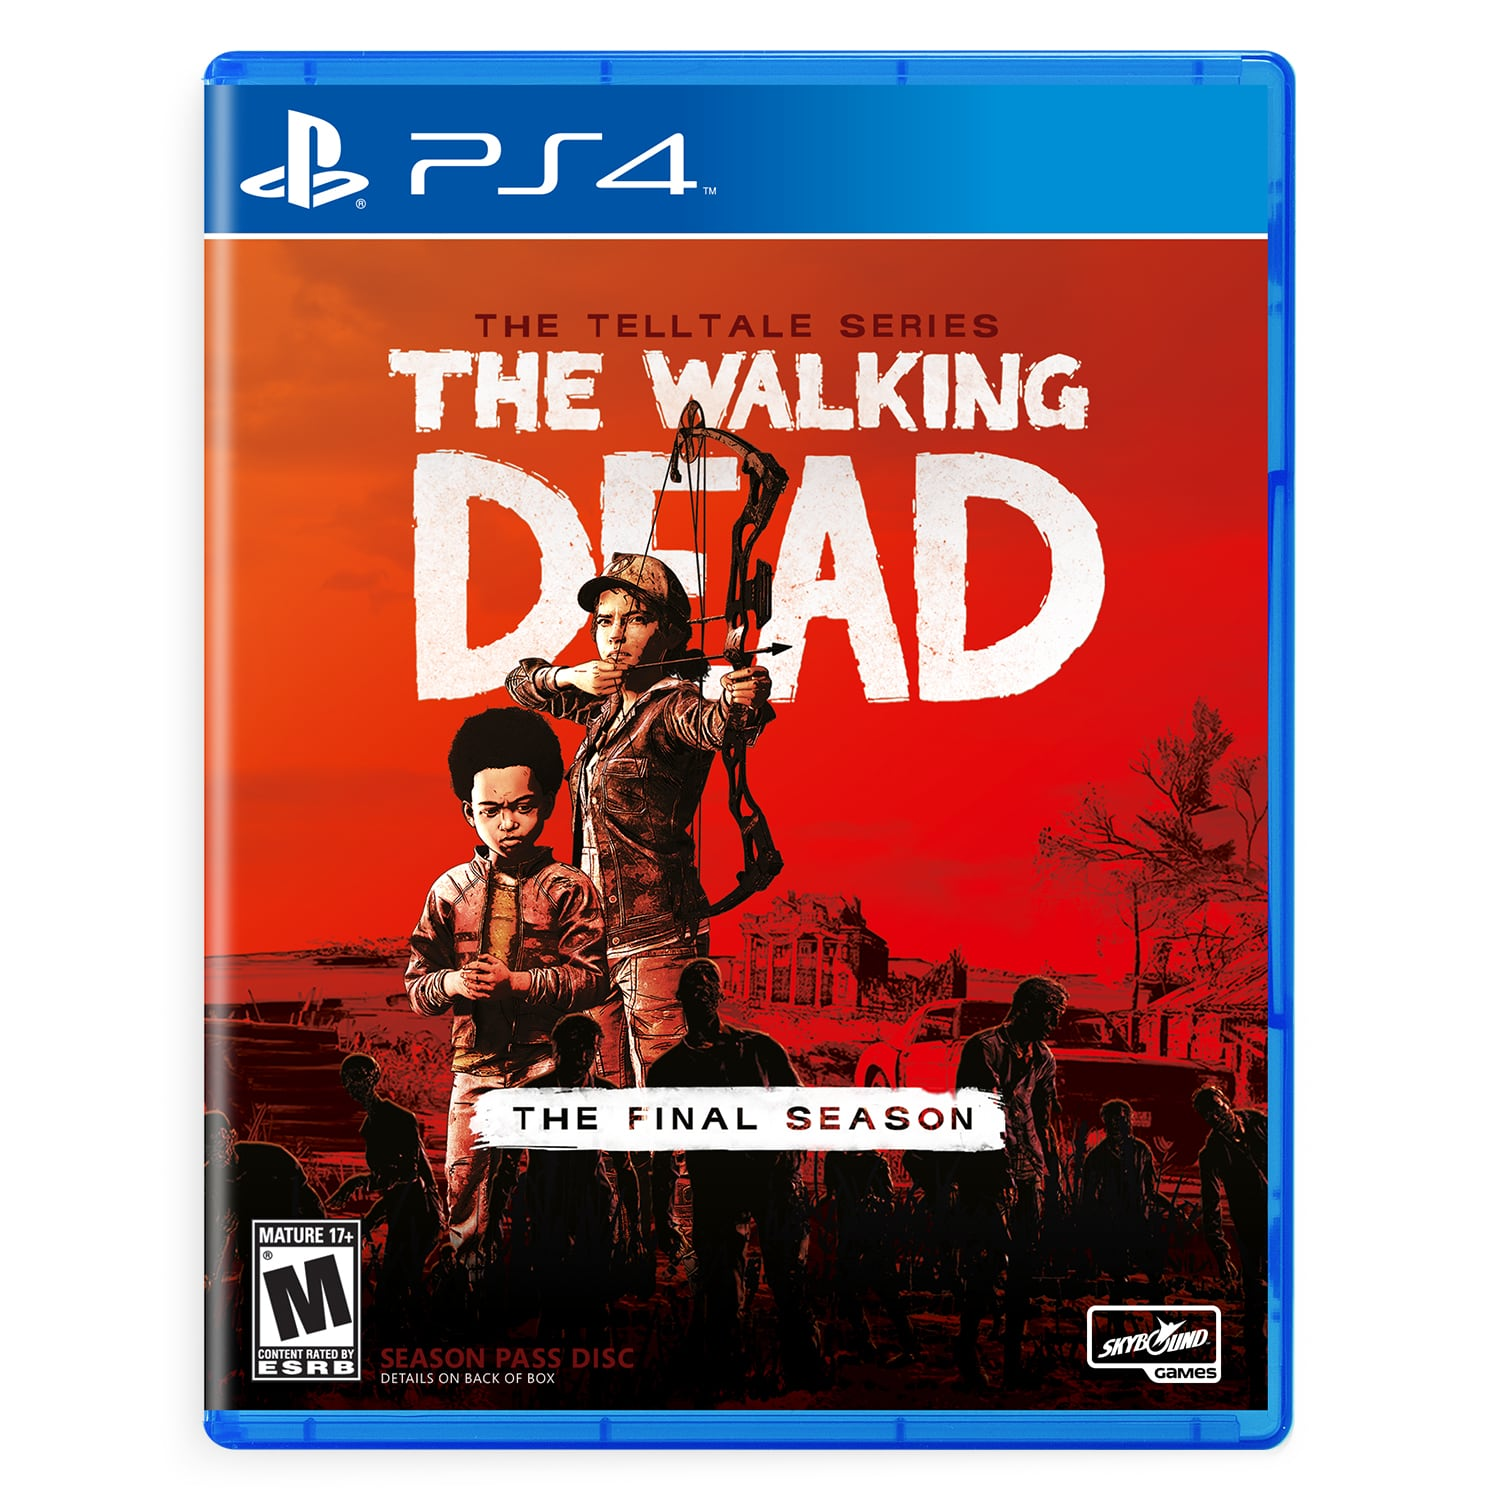 Telltale's The Walking Dead: Season 4 - The Final Season